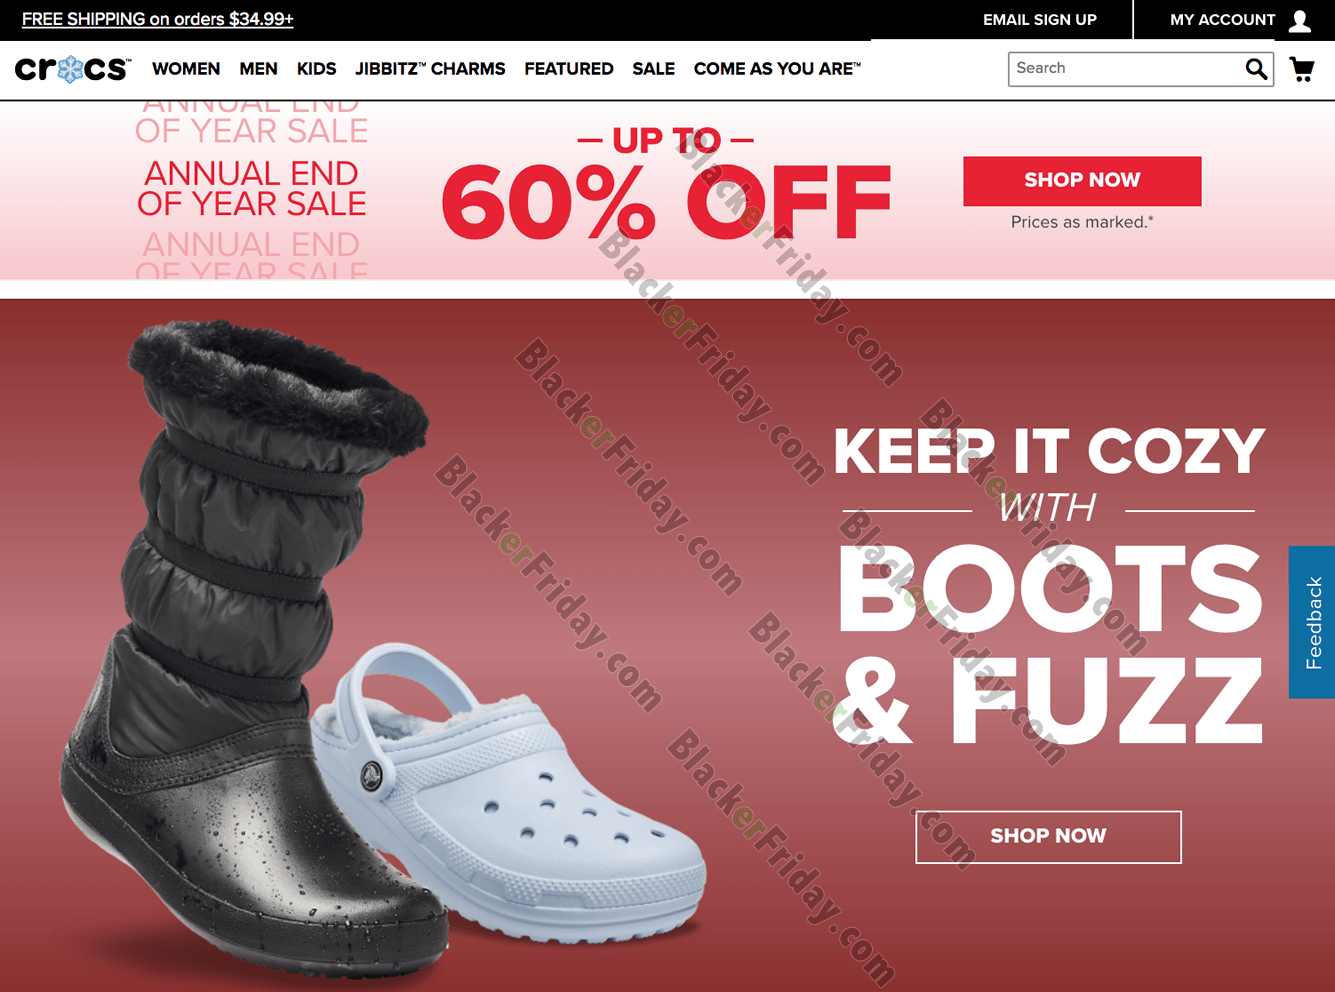 Crocs After Christmas Sale 2020 - What